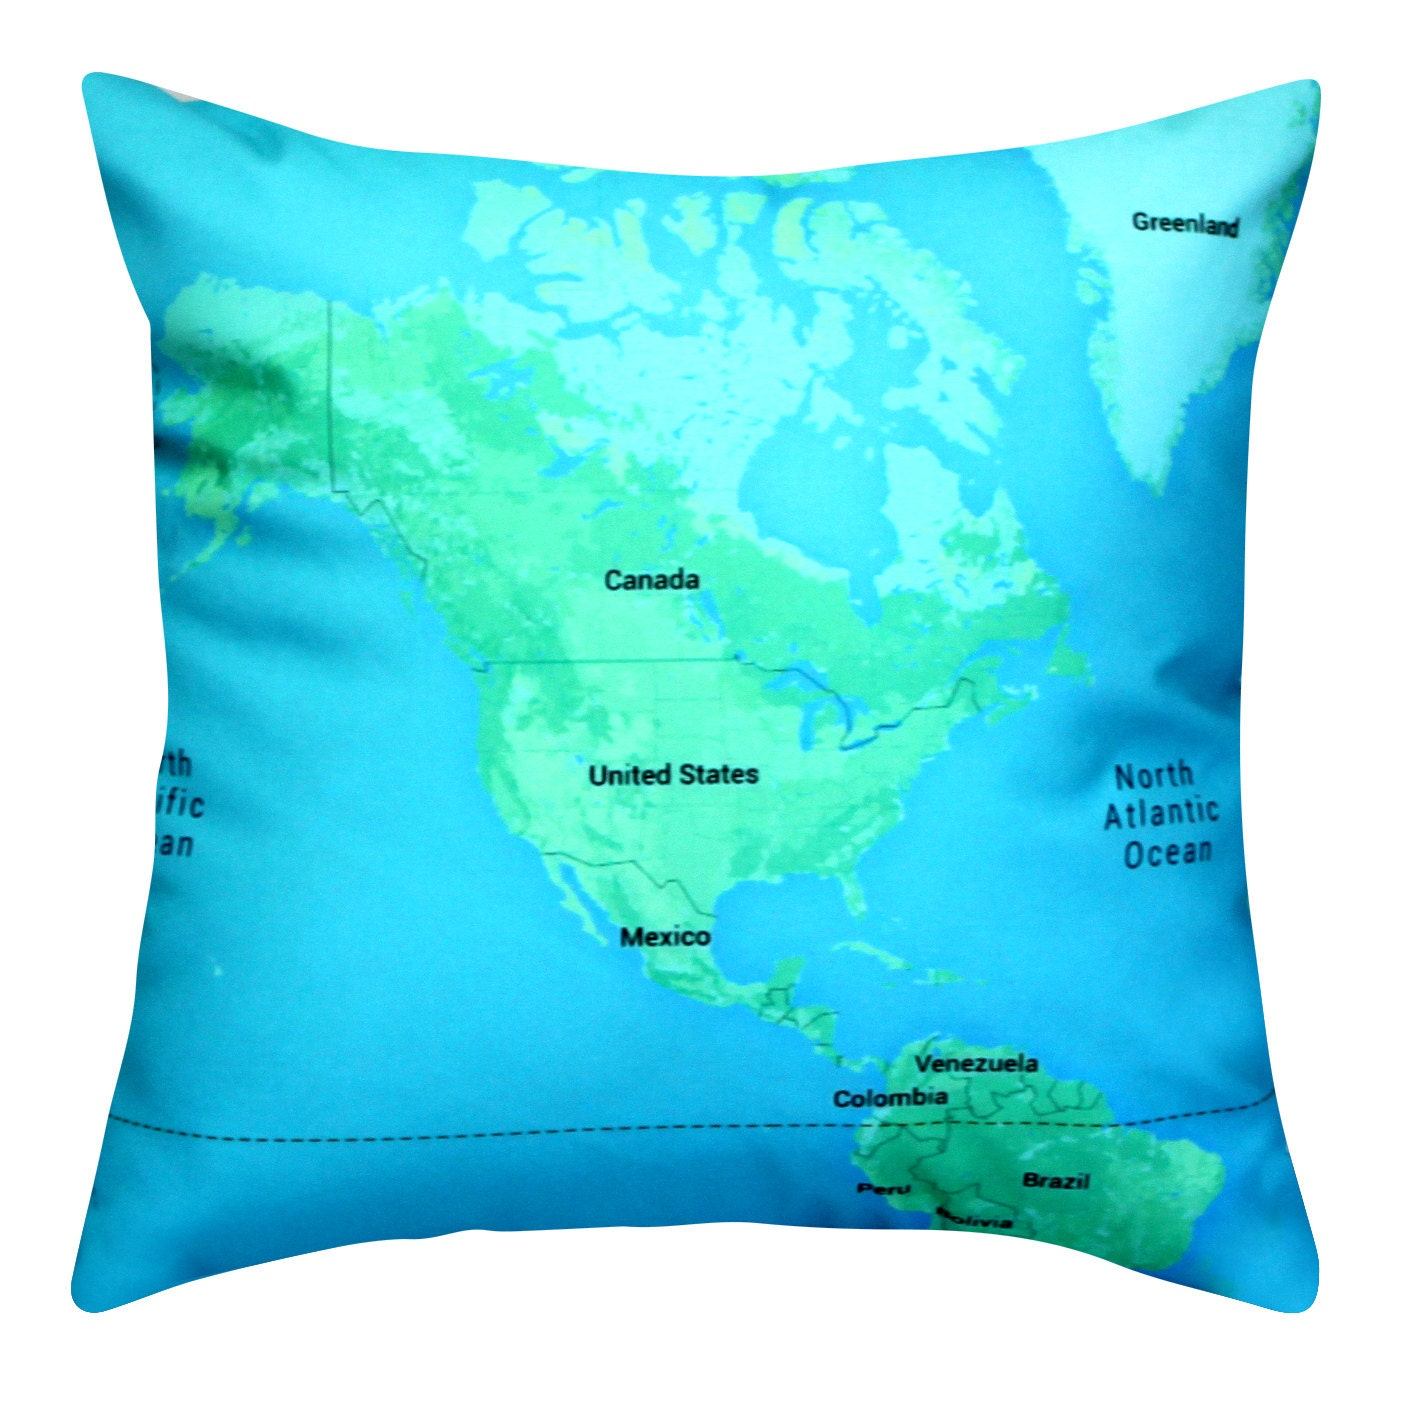 Throw Pillow Covers Made In Usa : North America Map Throw Pillow with pillow insert Invisible